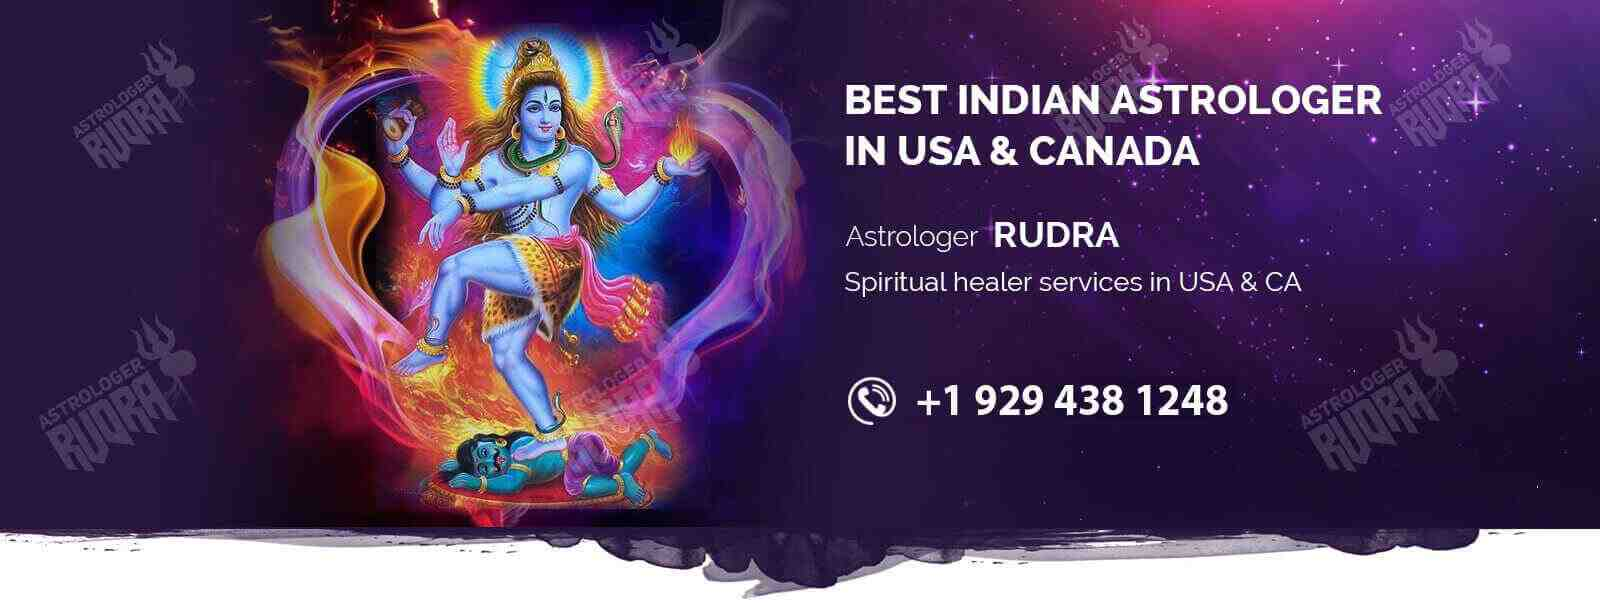 Famous Indian Astrologer in USA